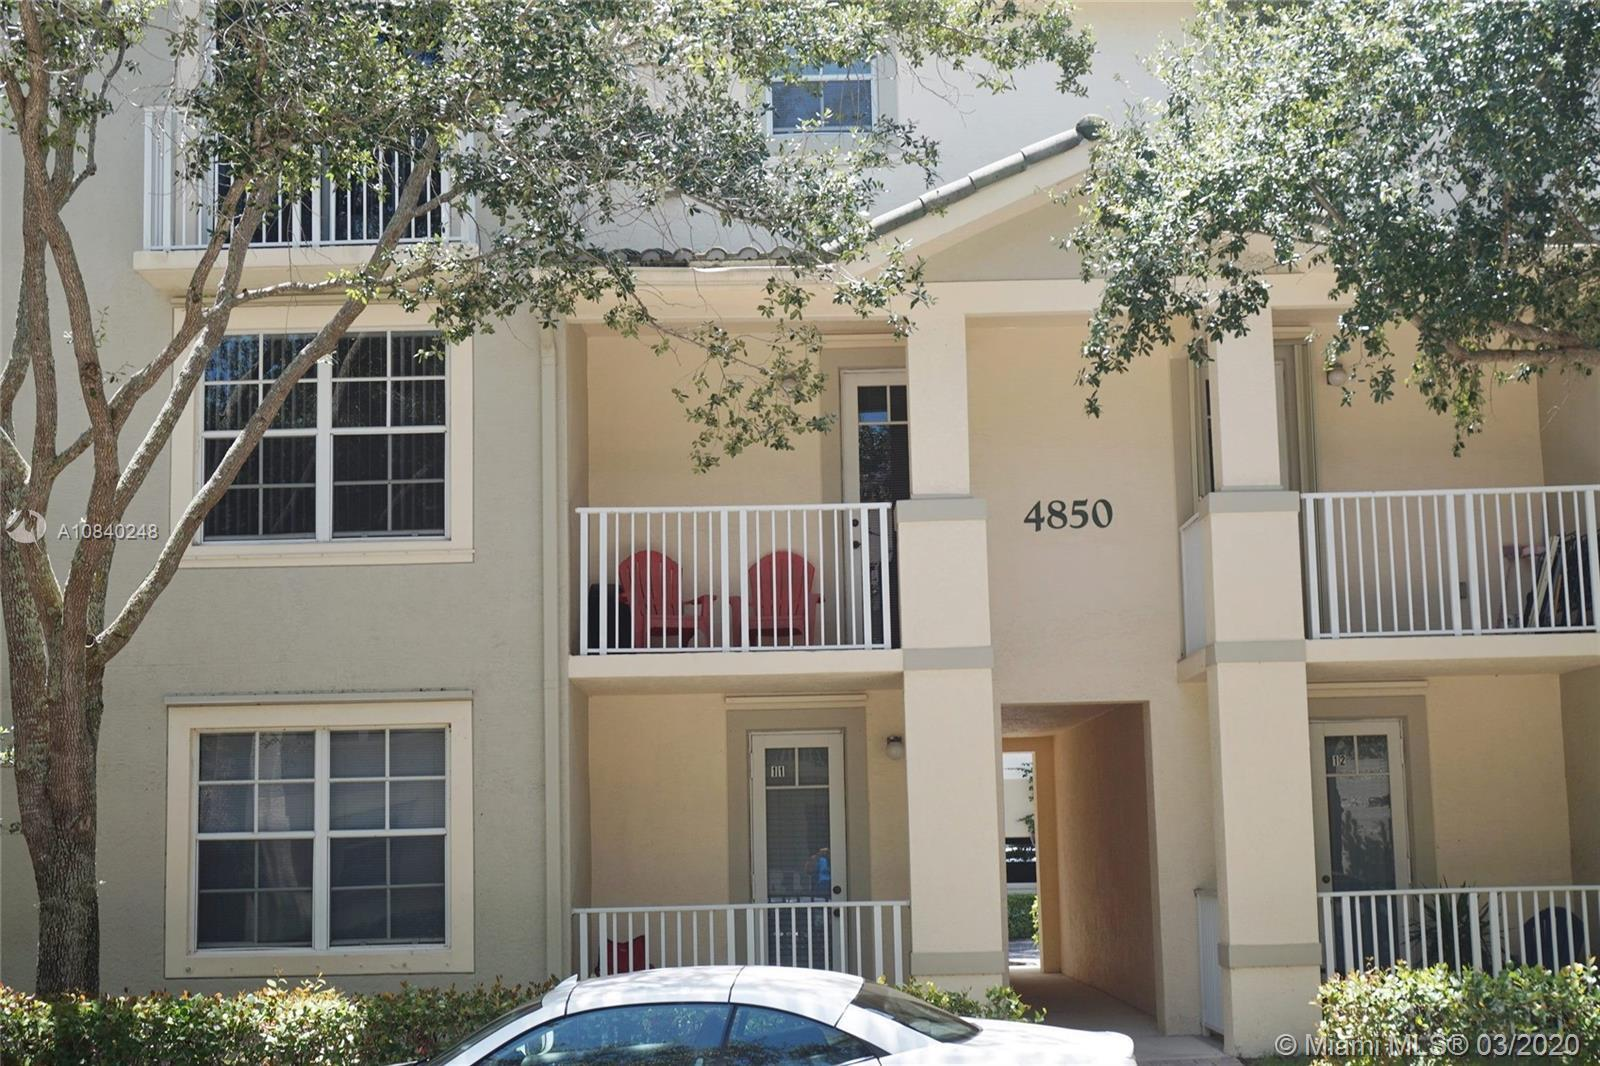 Charming 2-story 2/2 condo in the quaint Abacoa section of Jupiter. Quiet block off Town Center Driv